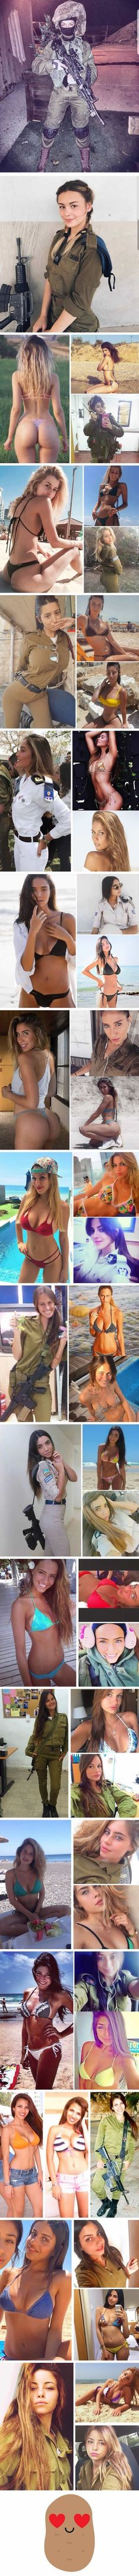 Israeli Female Soldiers Are A Supermodel Army . Browse new photos about Israeli Female Soldiers Are A Supermodel Army . Most Awesome Funny Photos Everyday! Military Women, Military Police, Israeli Female Soldiers, Idf Women, Armed Forces, Best Funny Pictures, Supermodels, Beautiful Women, Weapons